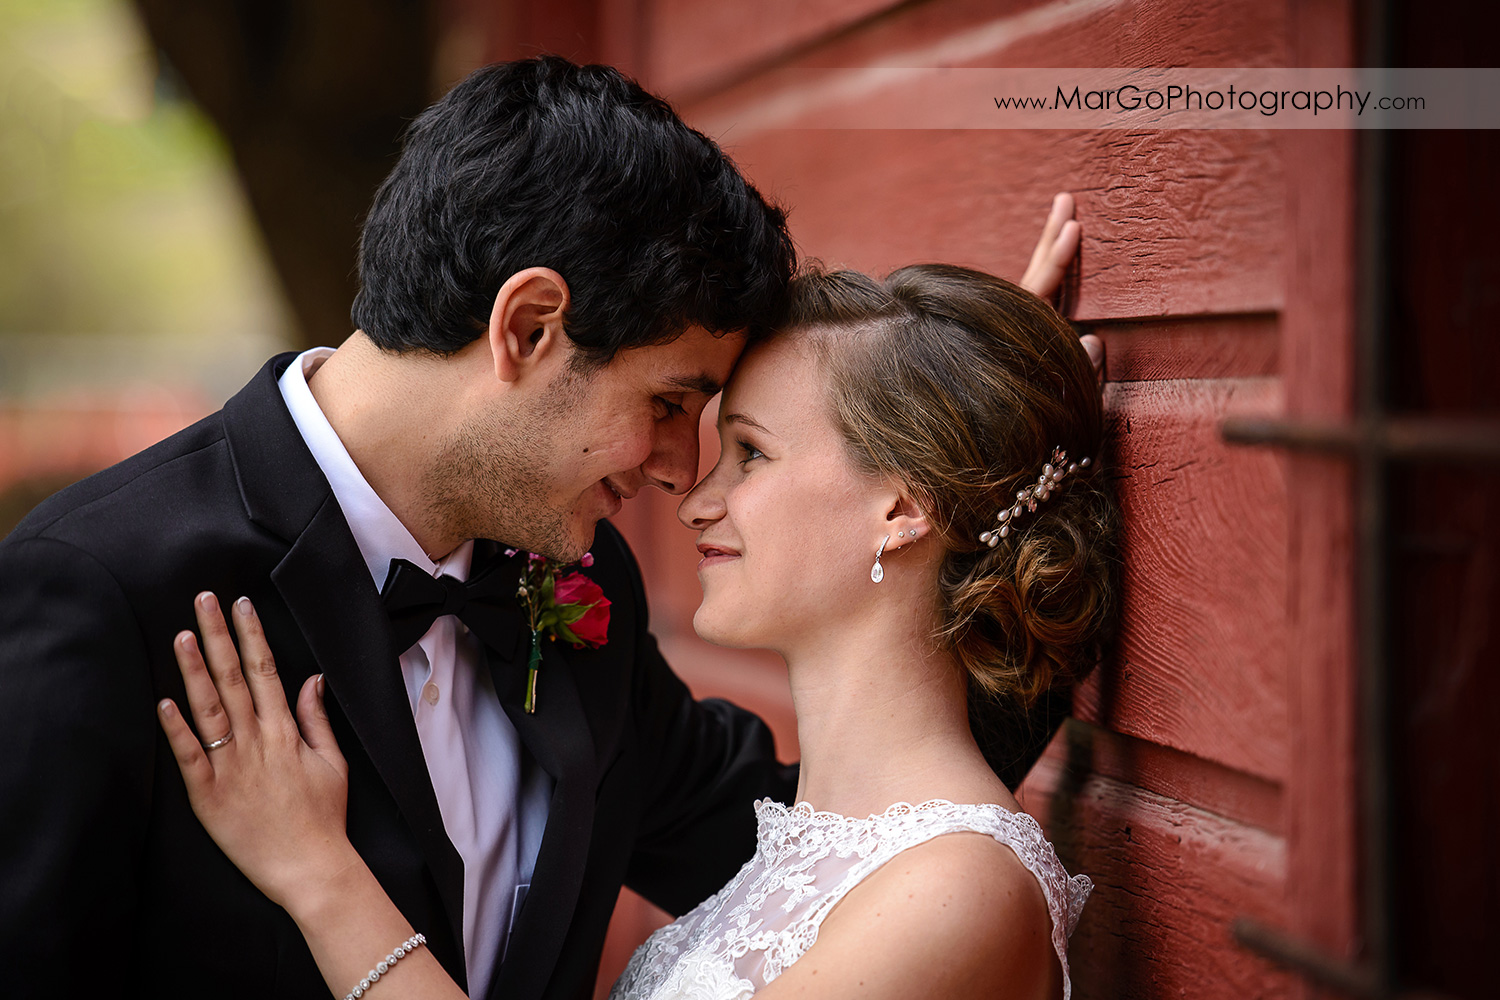 bride and groom snuggling noses at red barn wall during bridal session at Shinn Historical Park and Arboretum in Fremont